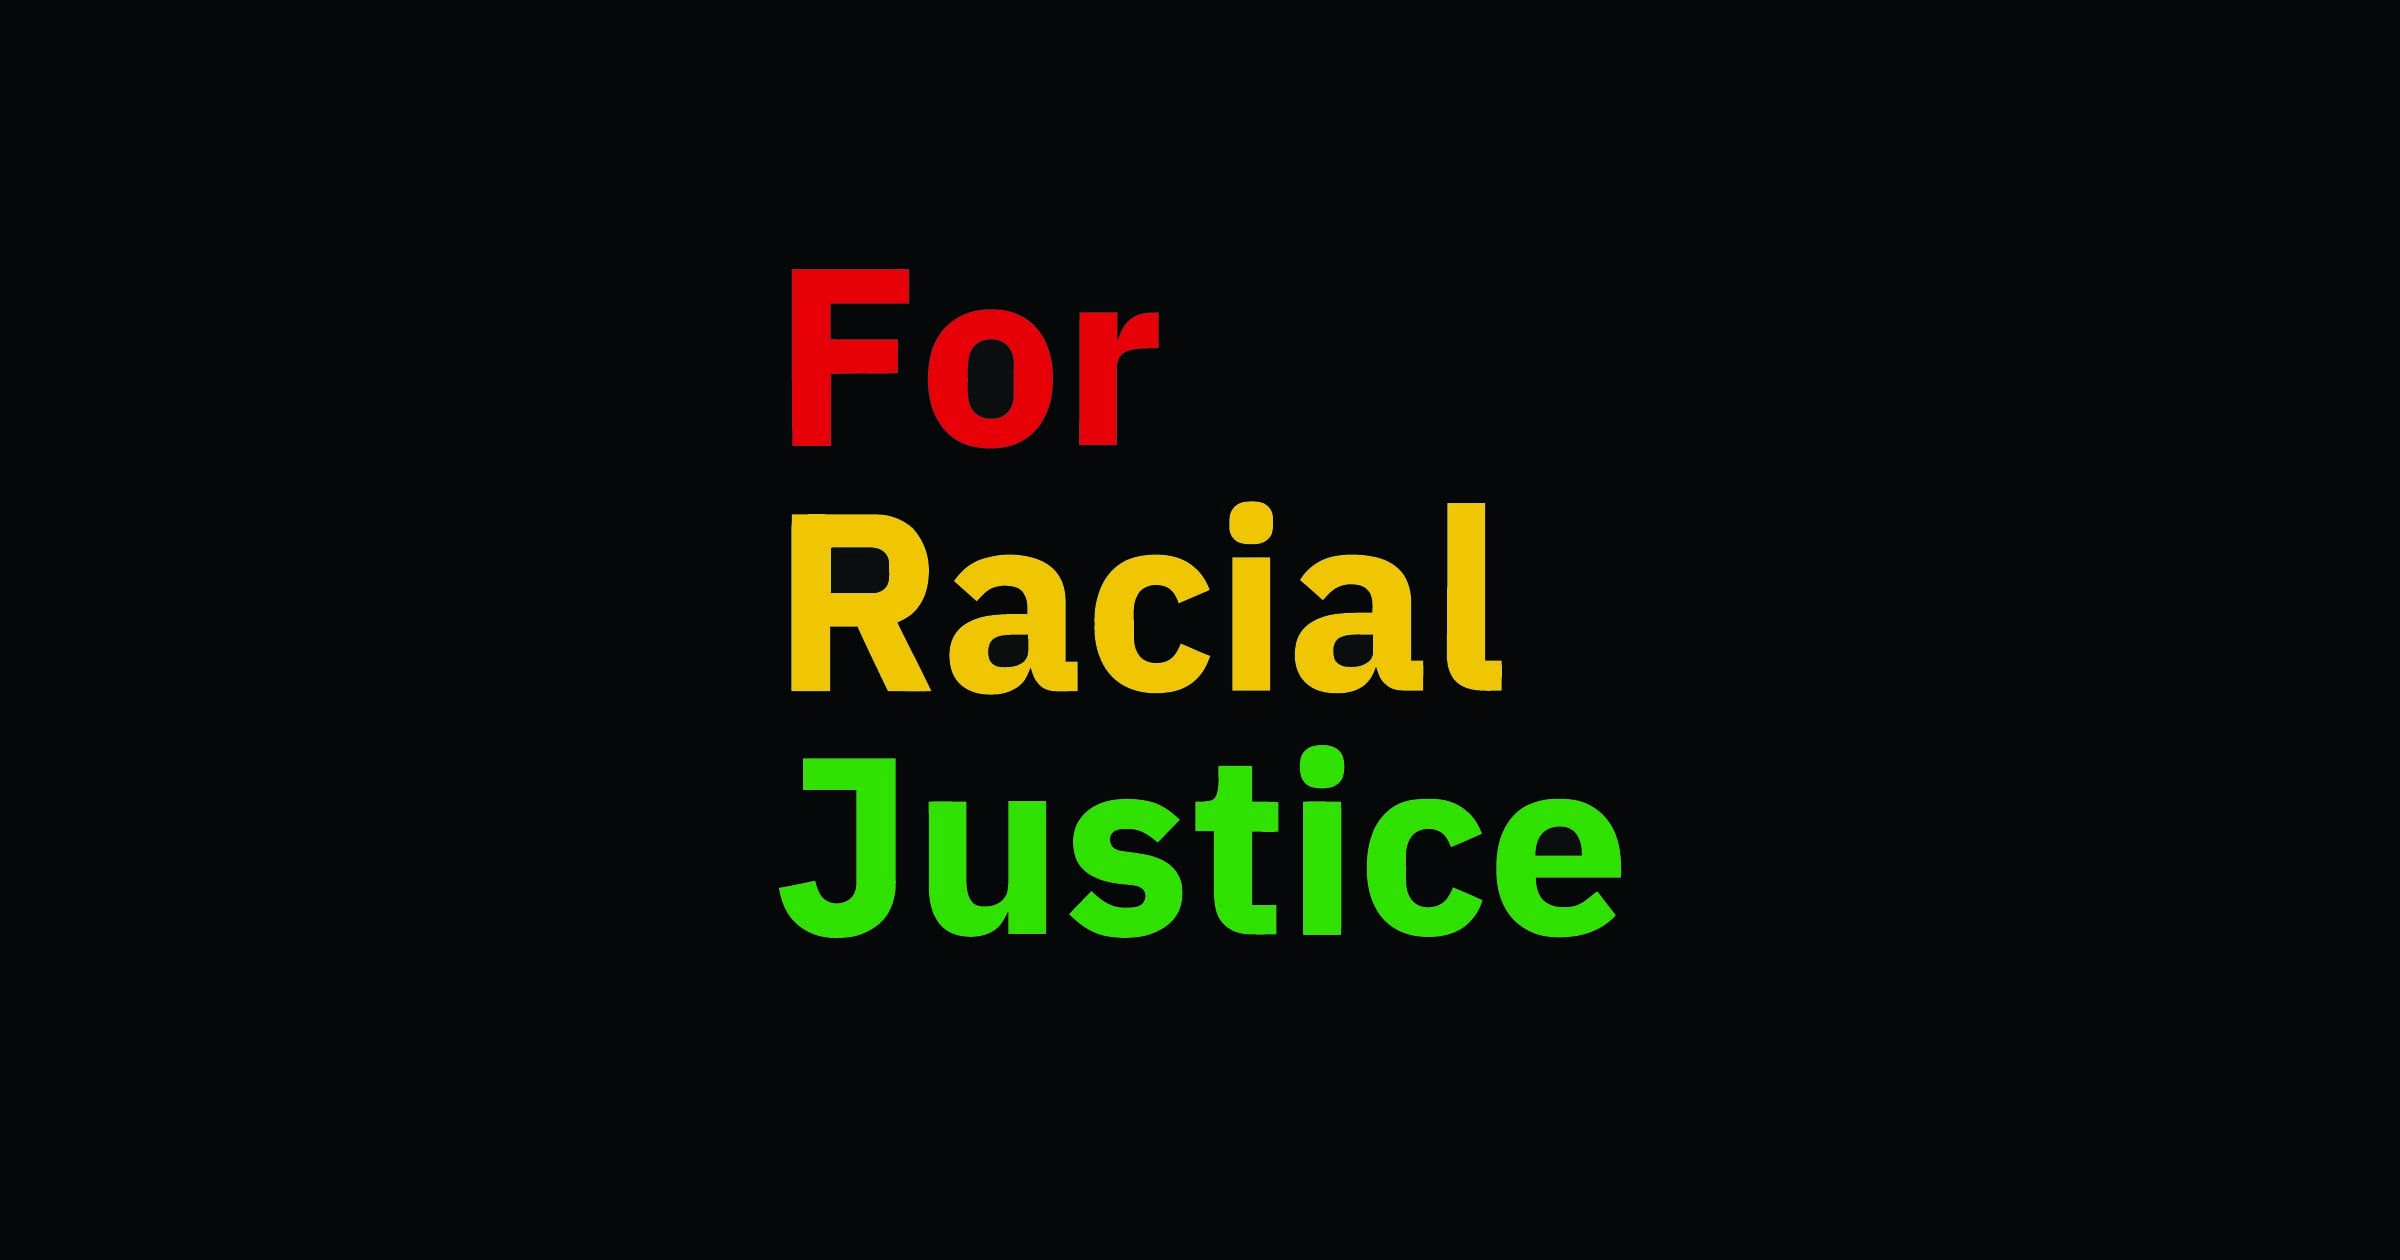 New Open Source Projects to Confront Racial Justice - Linux Foundation